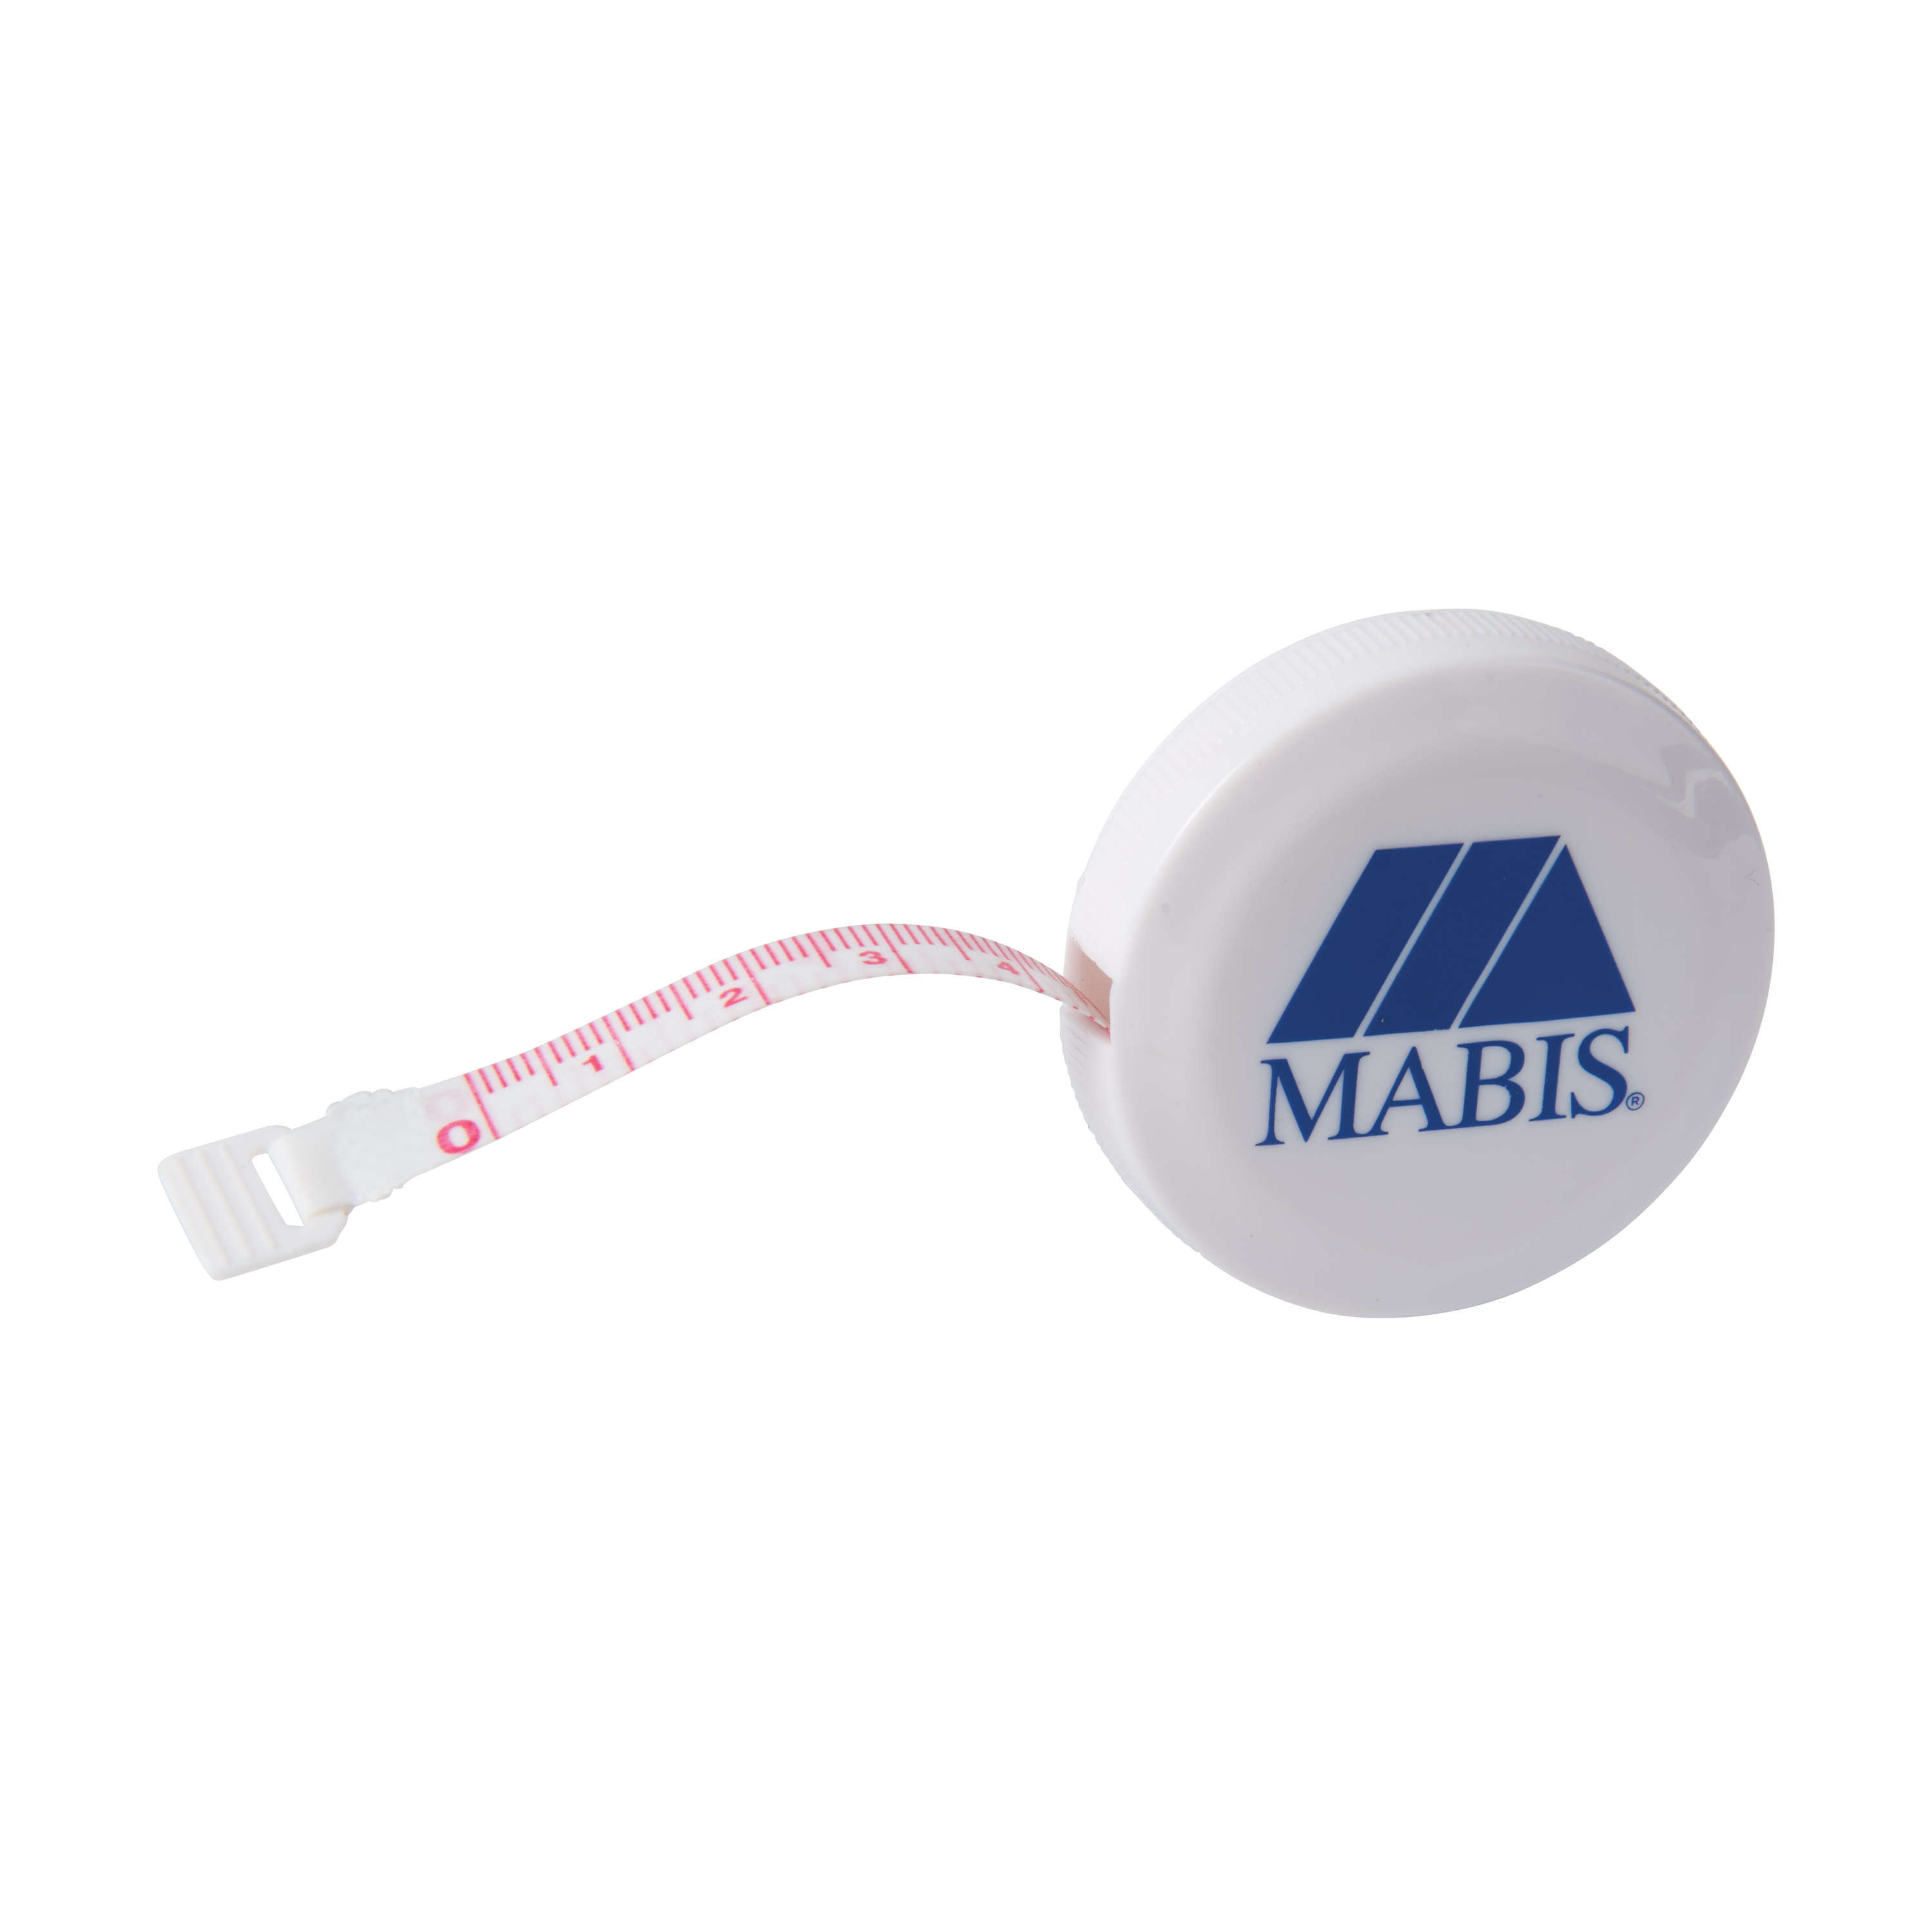 MABIS Tape Measure Measuring Tape for Body, Pocket Size Compact Retractable Flexible, 60... by Briggs Healthcare